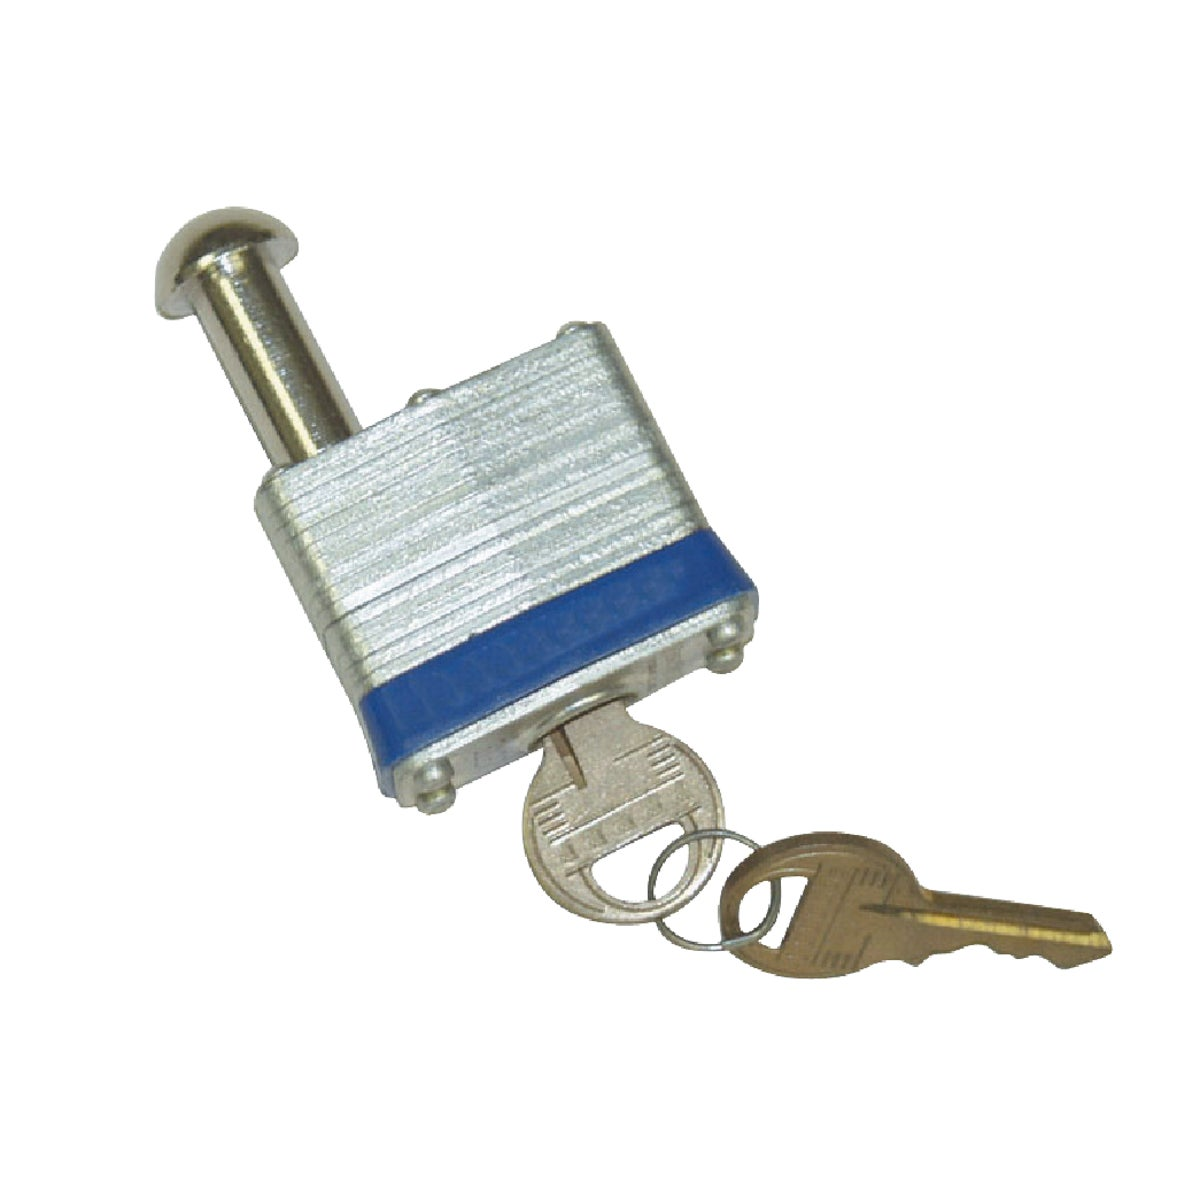 GATE PIN LOCK